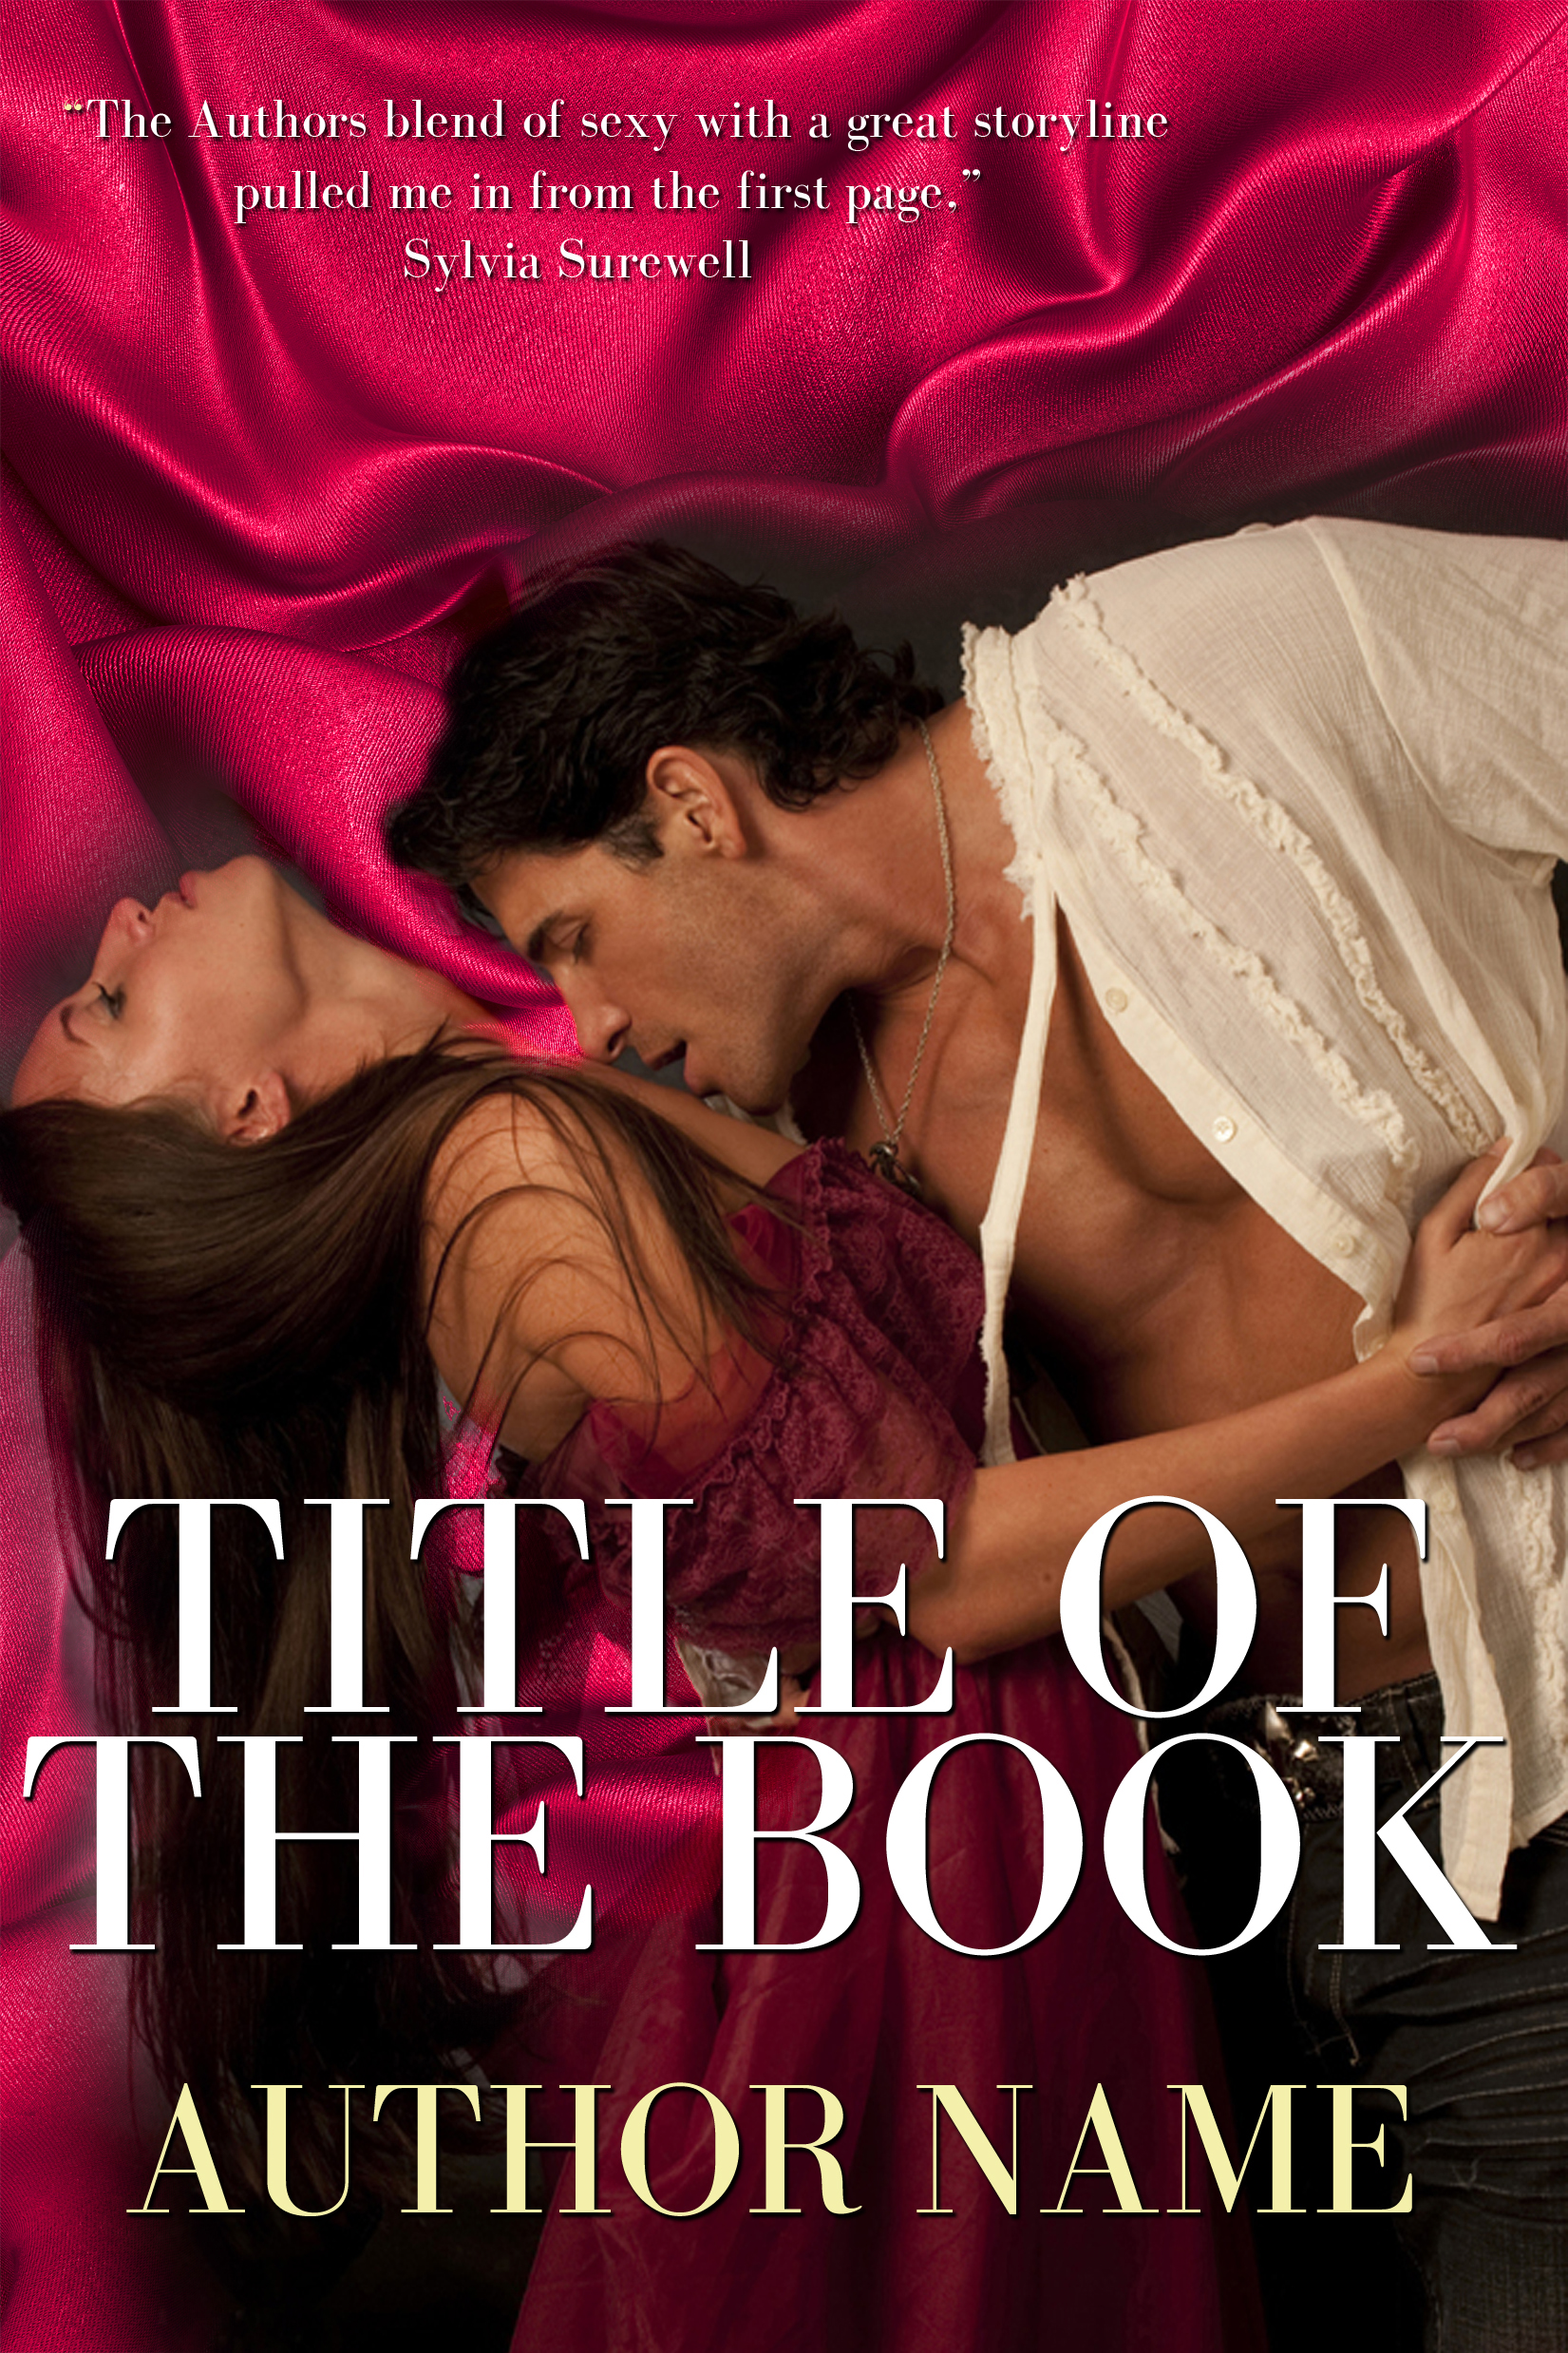 Romance Book Cover Pictures : Paranormal and historical romance novel covers now